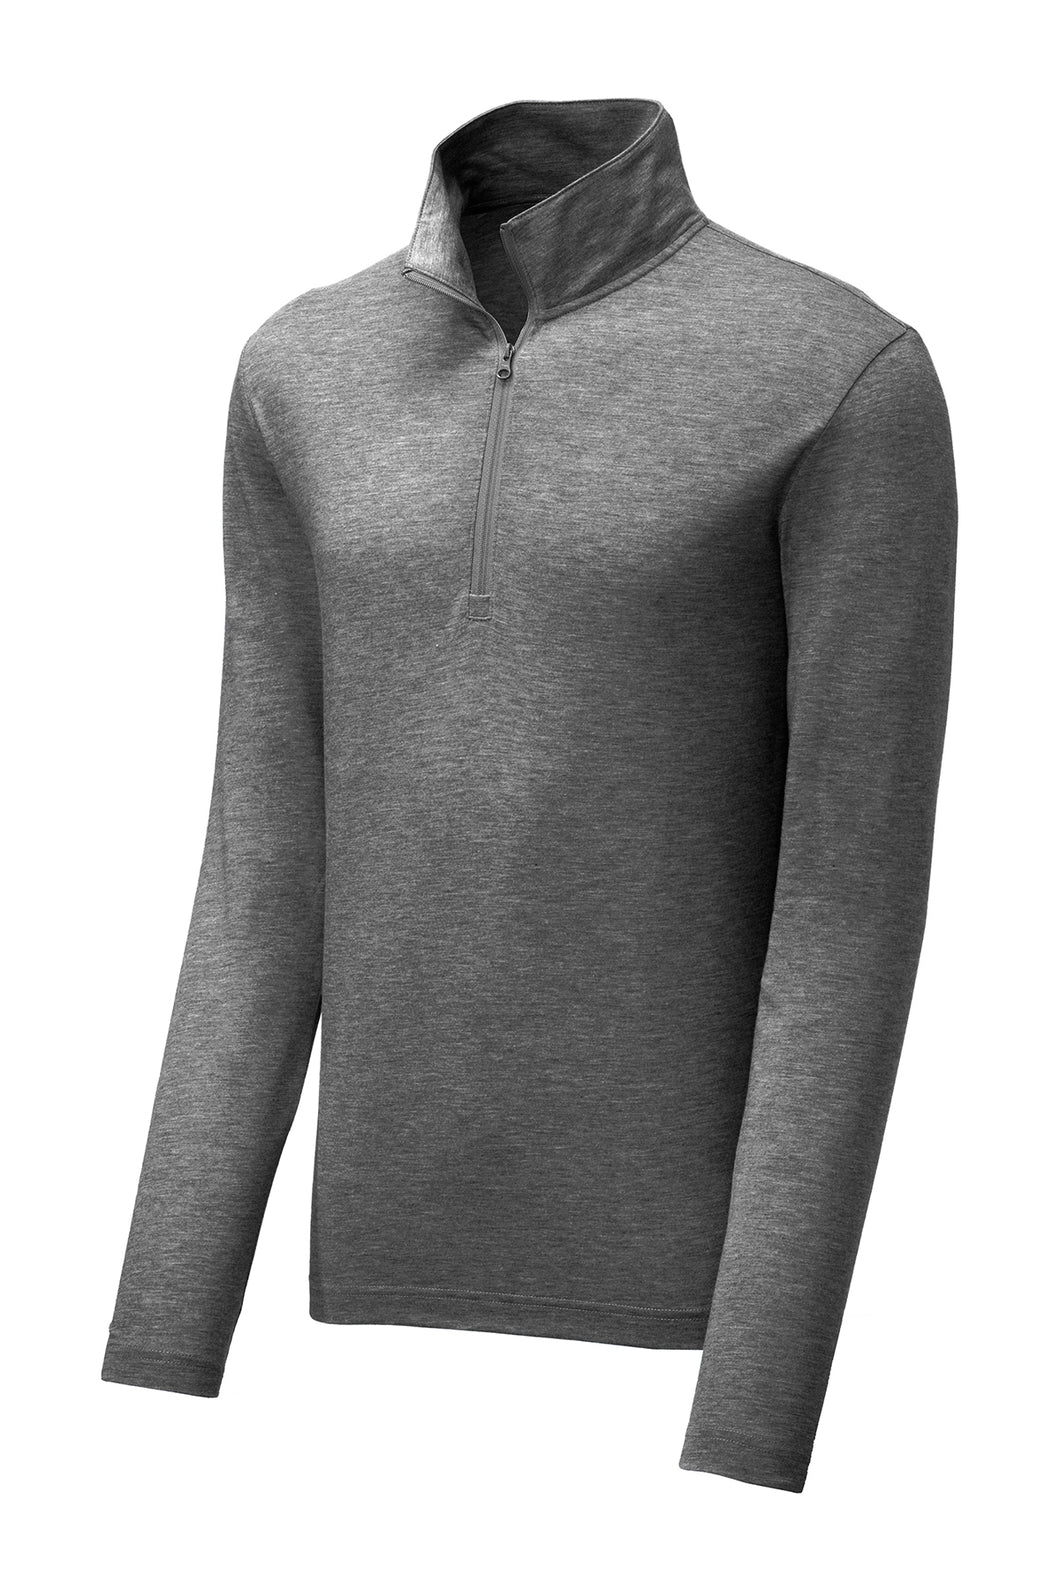 Fusion Performance Quarter-Zip - Graphite